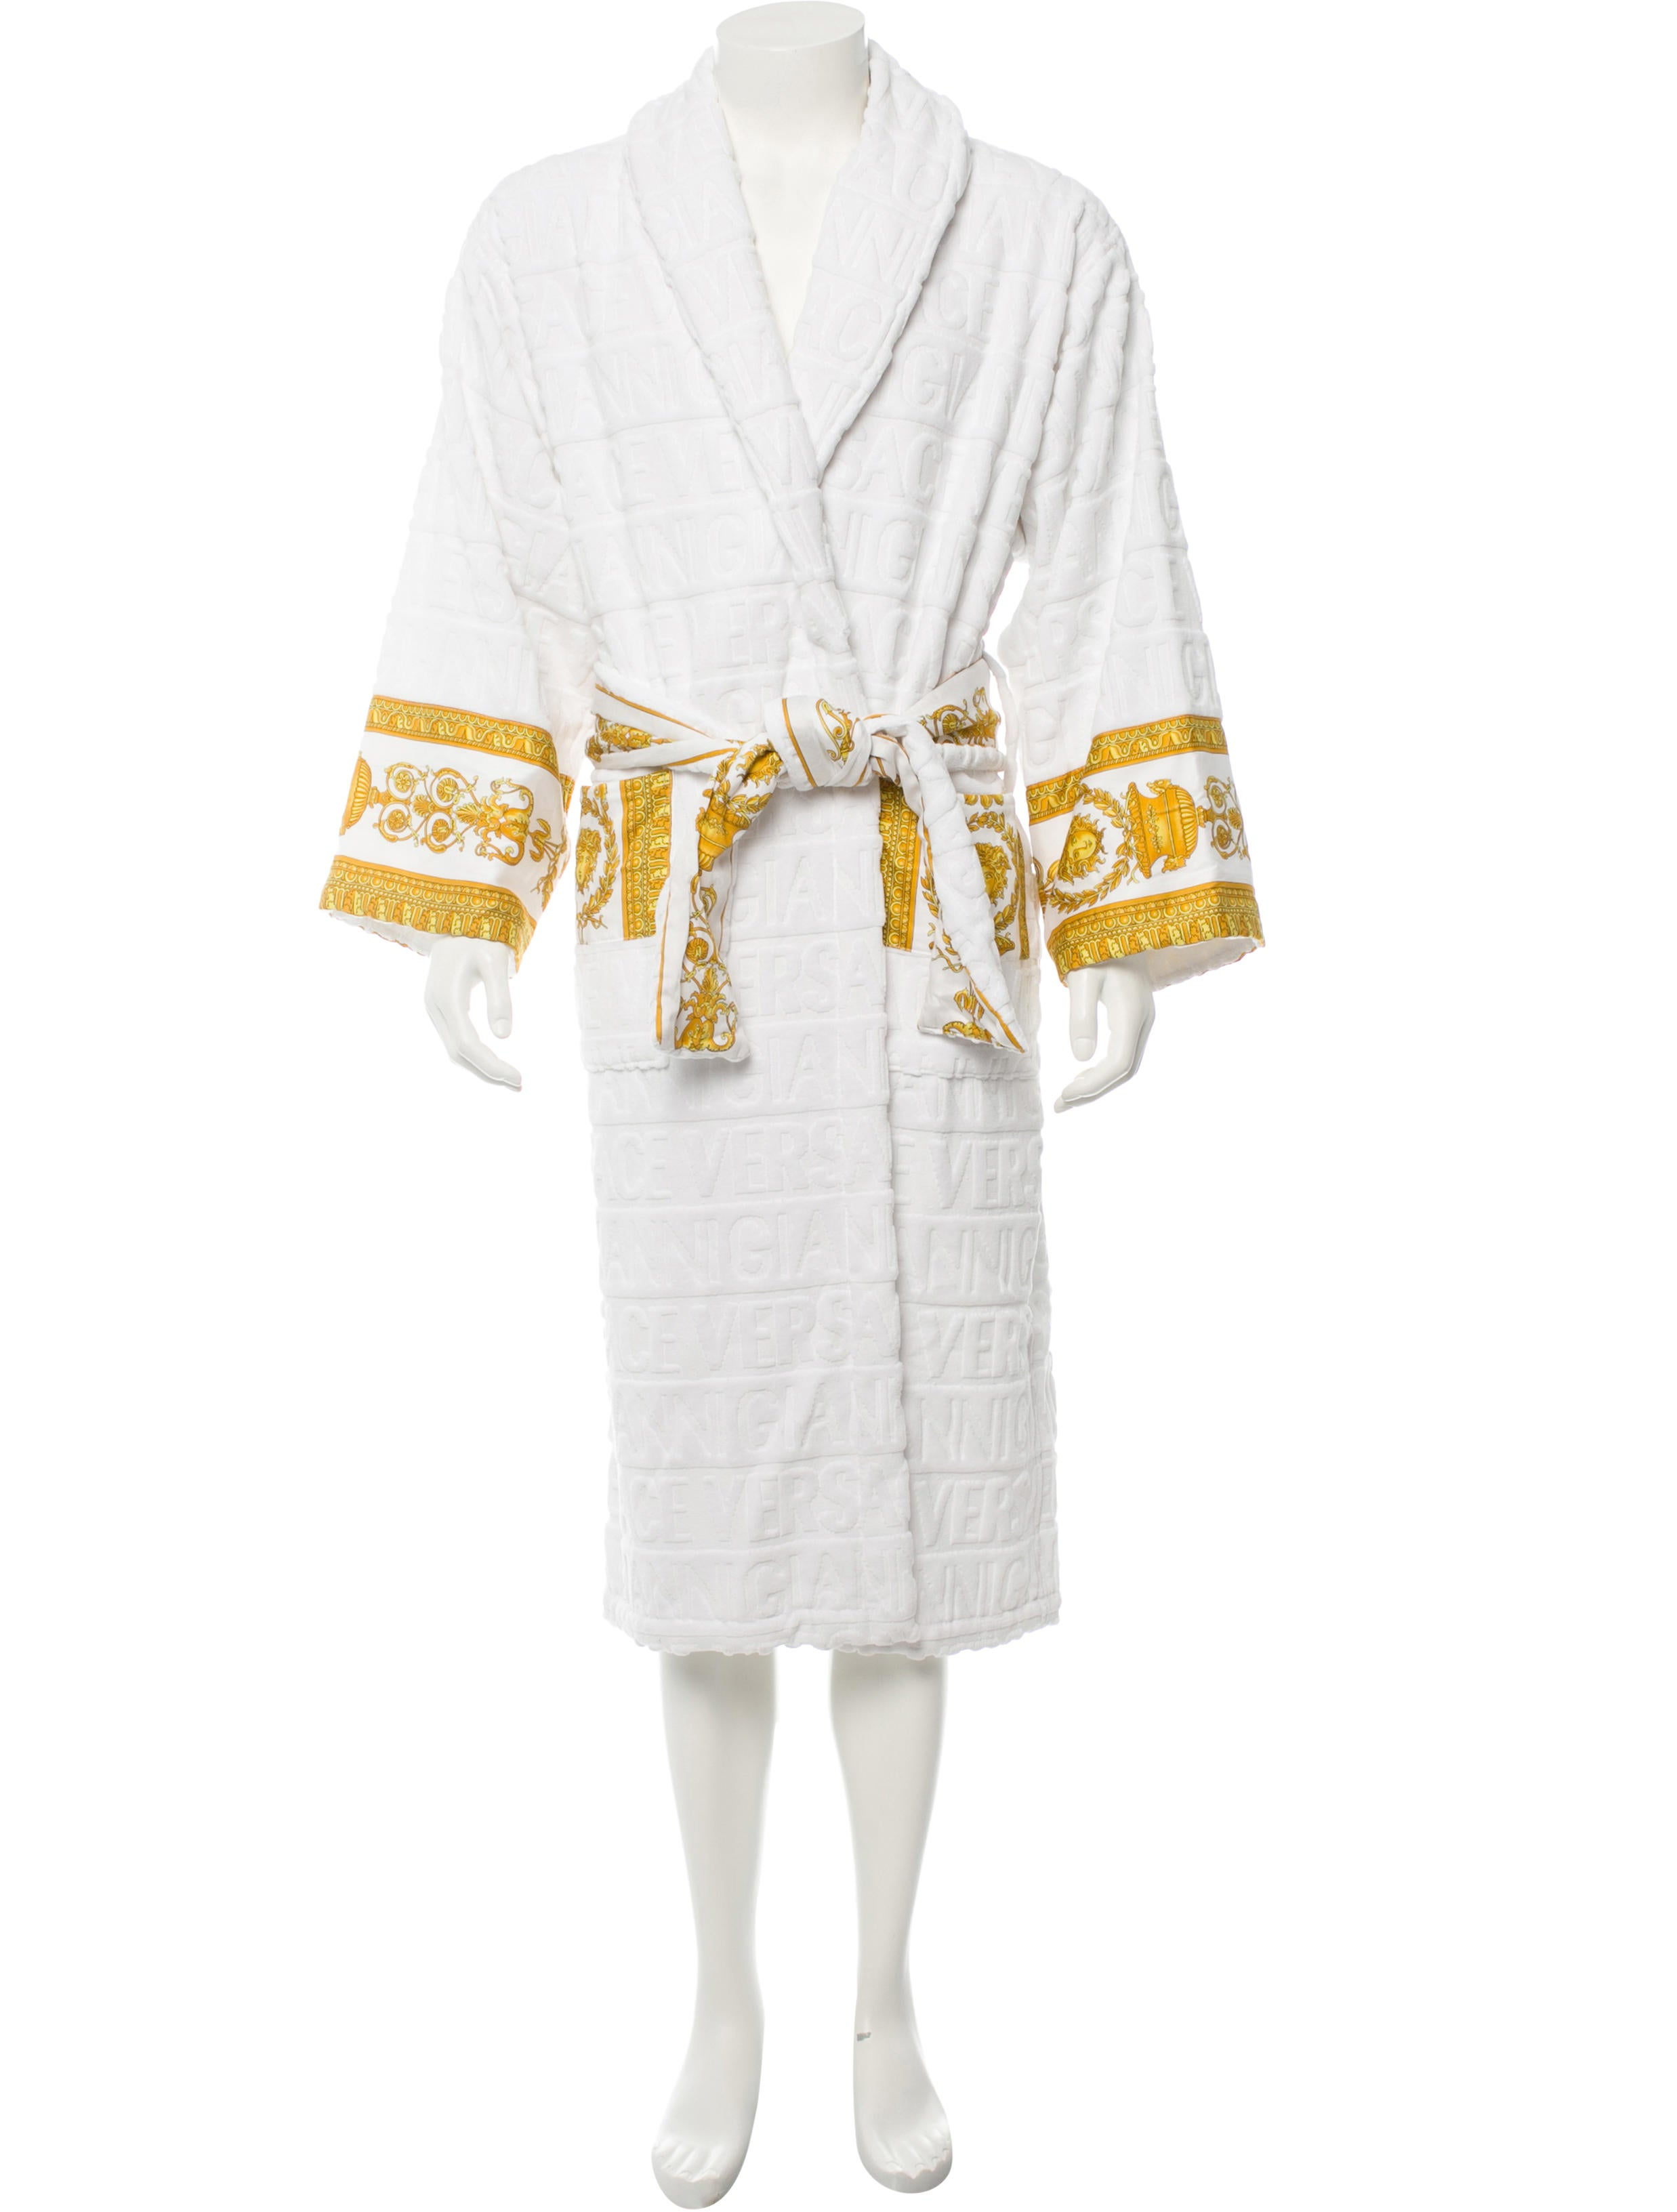 Versace Robe Clothing VES22636 The RealReal : VES226361enlarged from www.therealreal.com size 2475 x 3265 jpeg 265kB